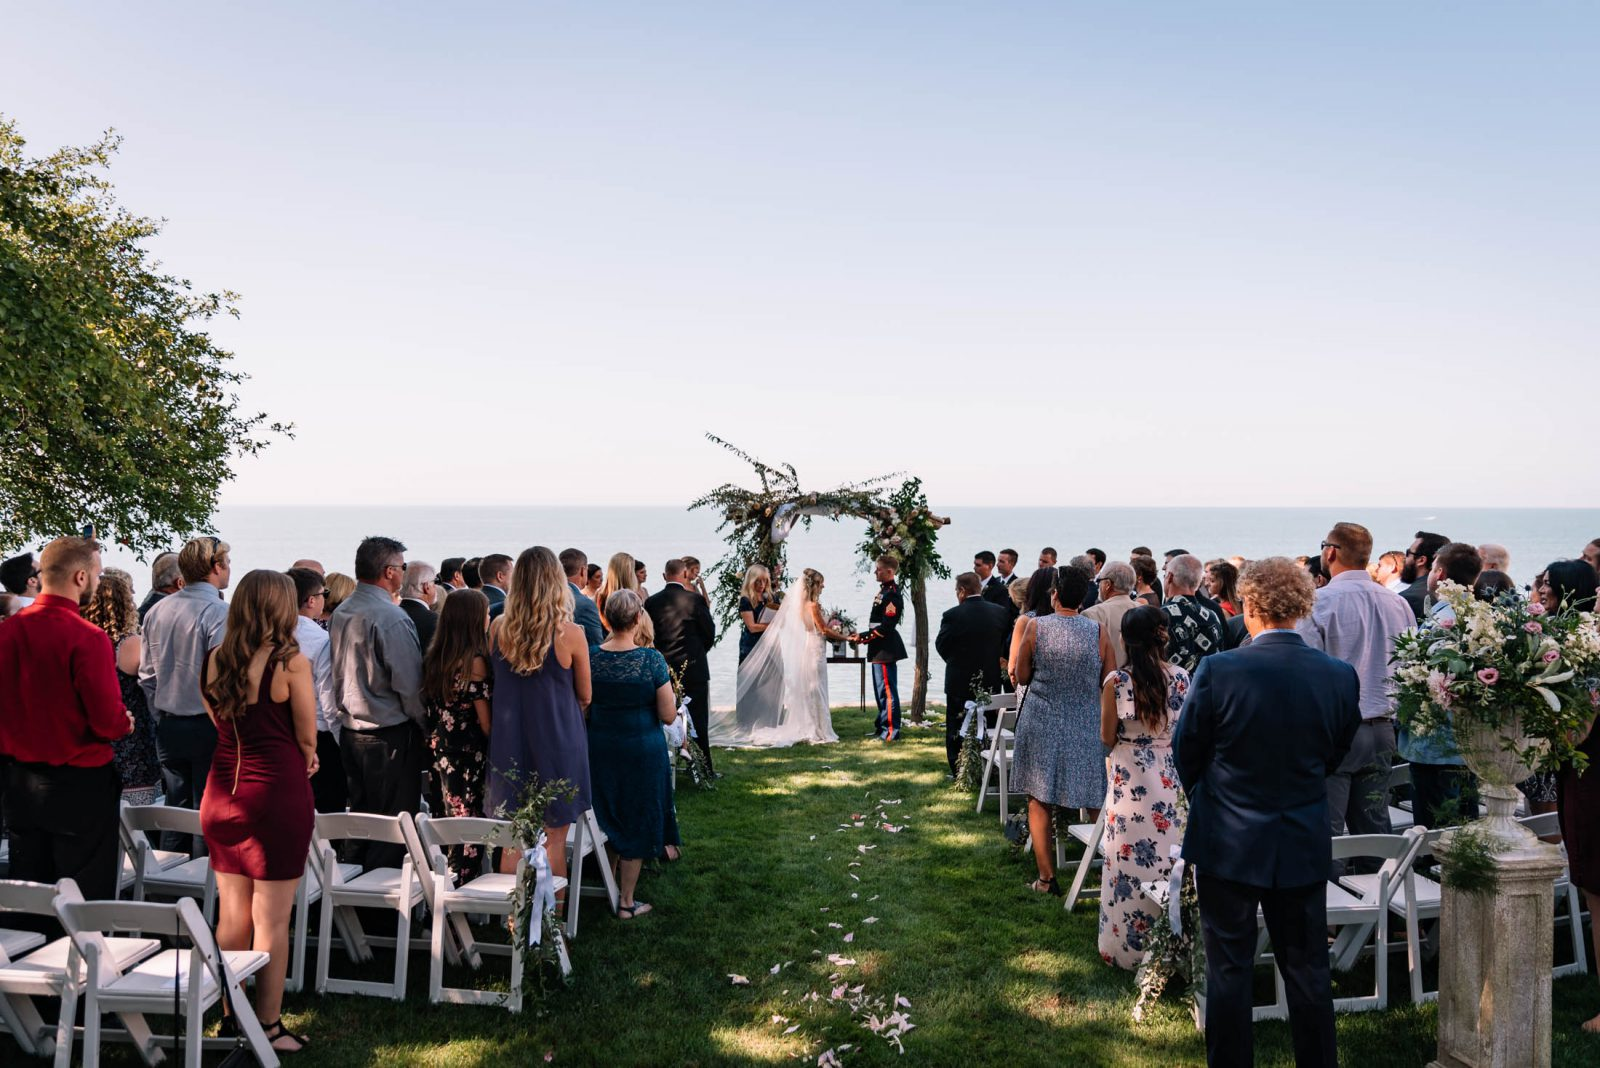 Outdoor Waterfront Wedding Ceremony with Flower Arch